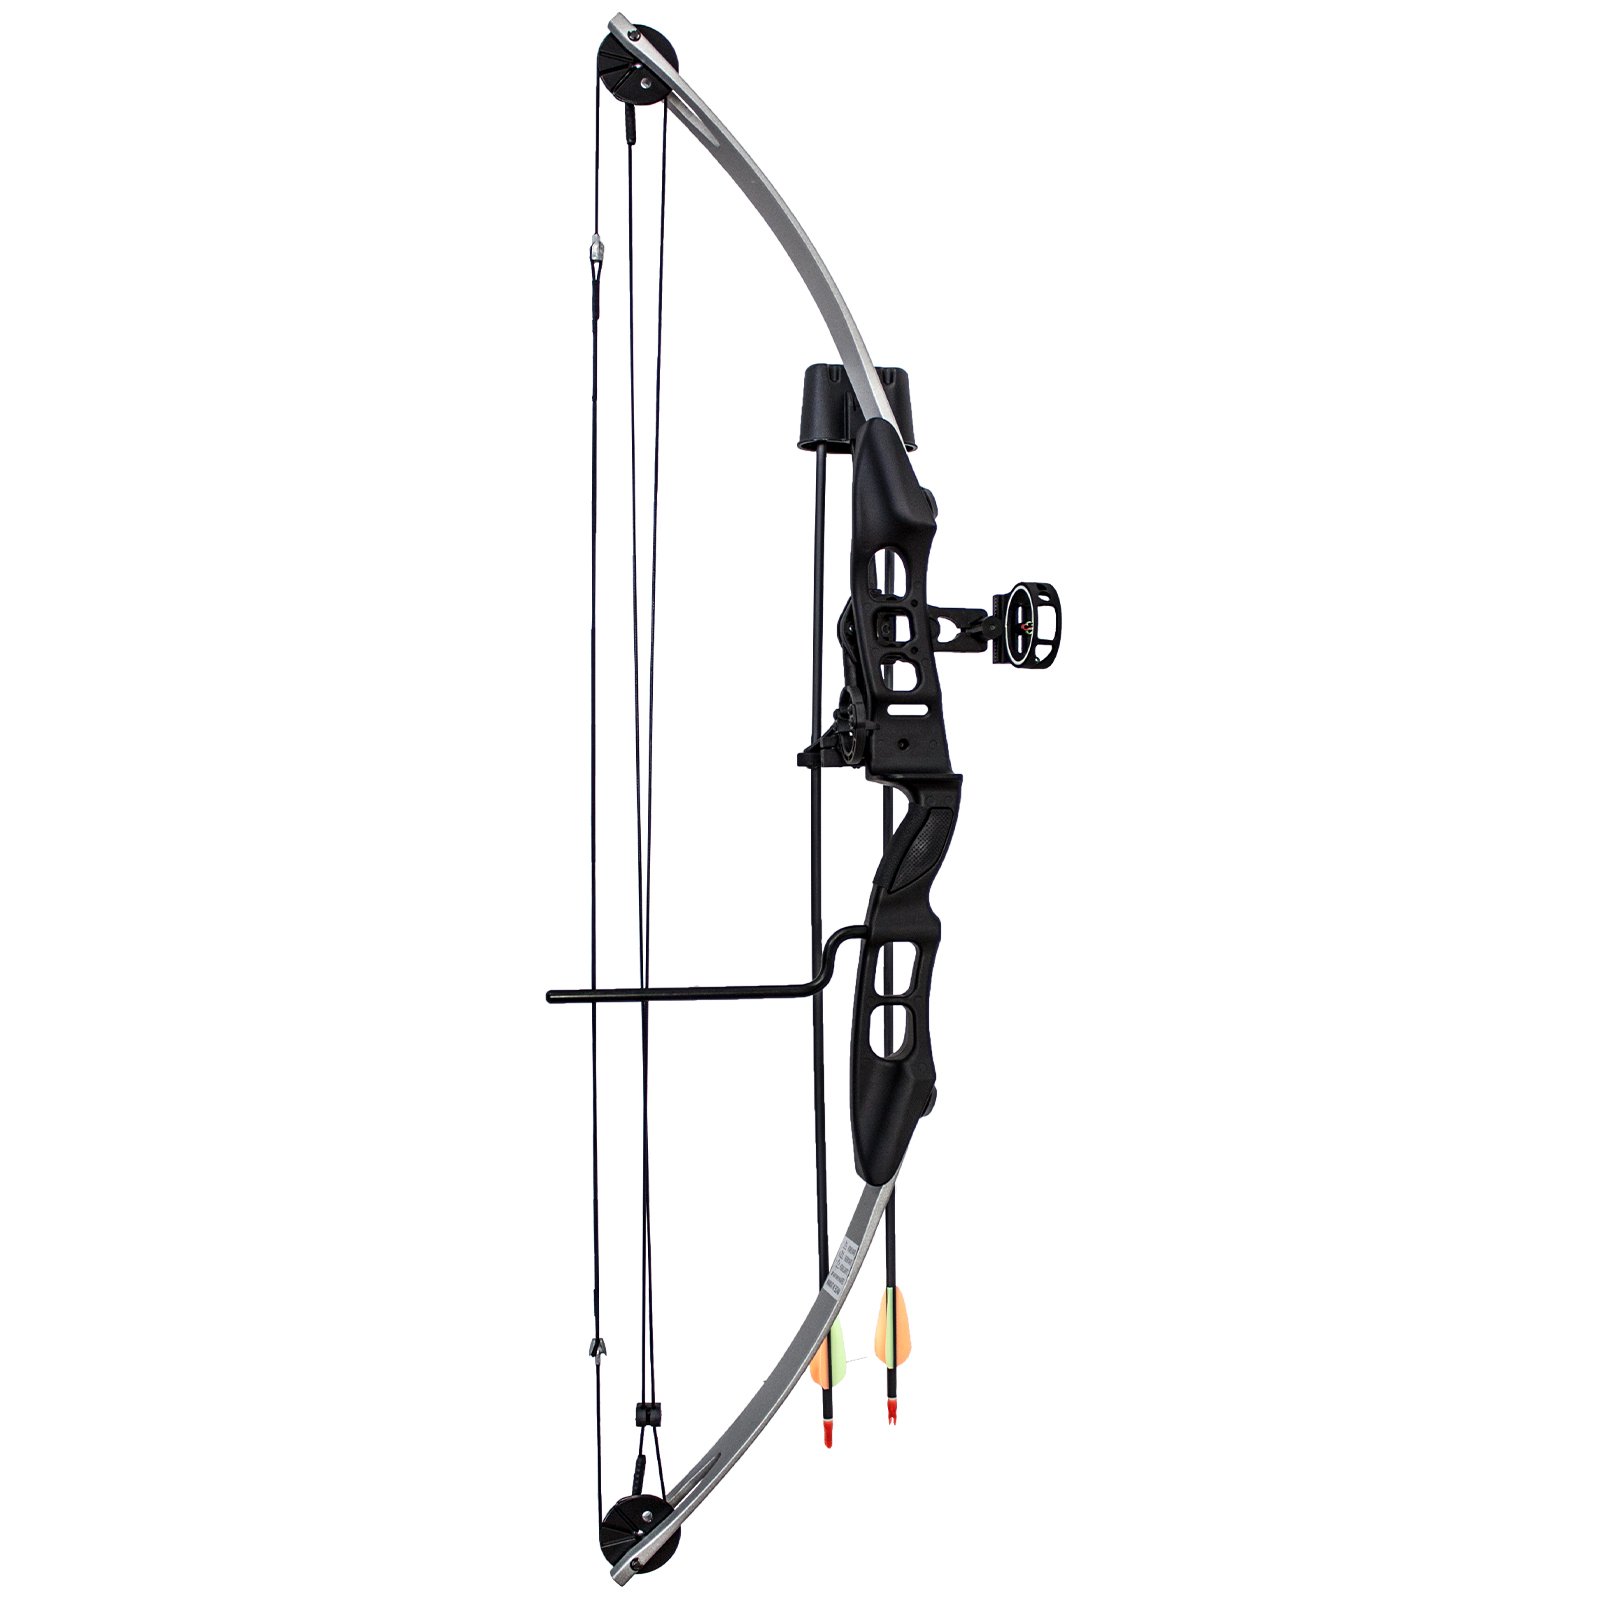 SAS Sergeant 55 Lb 29'' Compound Bow Package with 3-Pin Sight, Arrow Rest, Quiver, Arrows, Arm Guard and Finger Tab by Southland Archery Supply